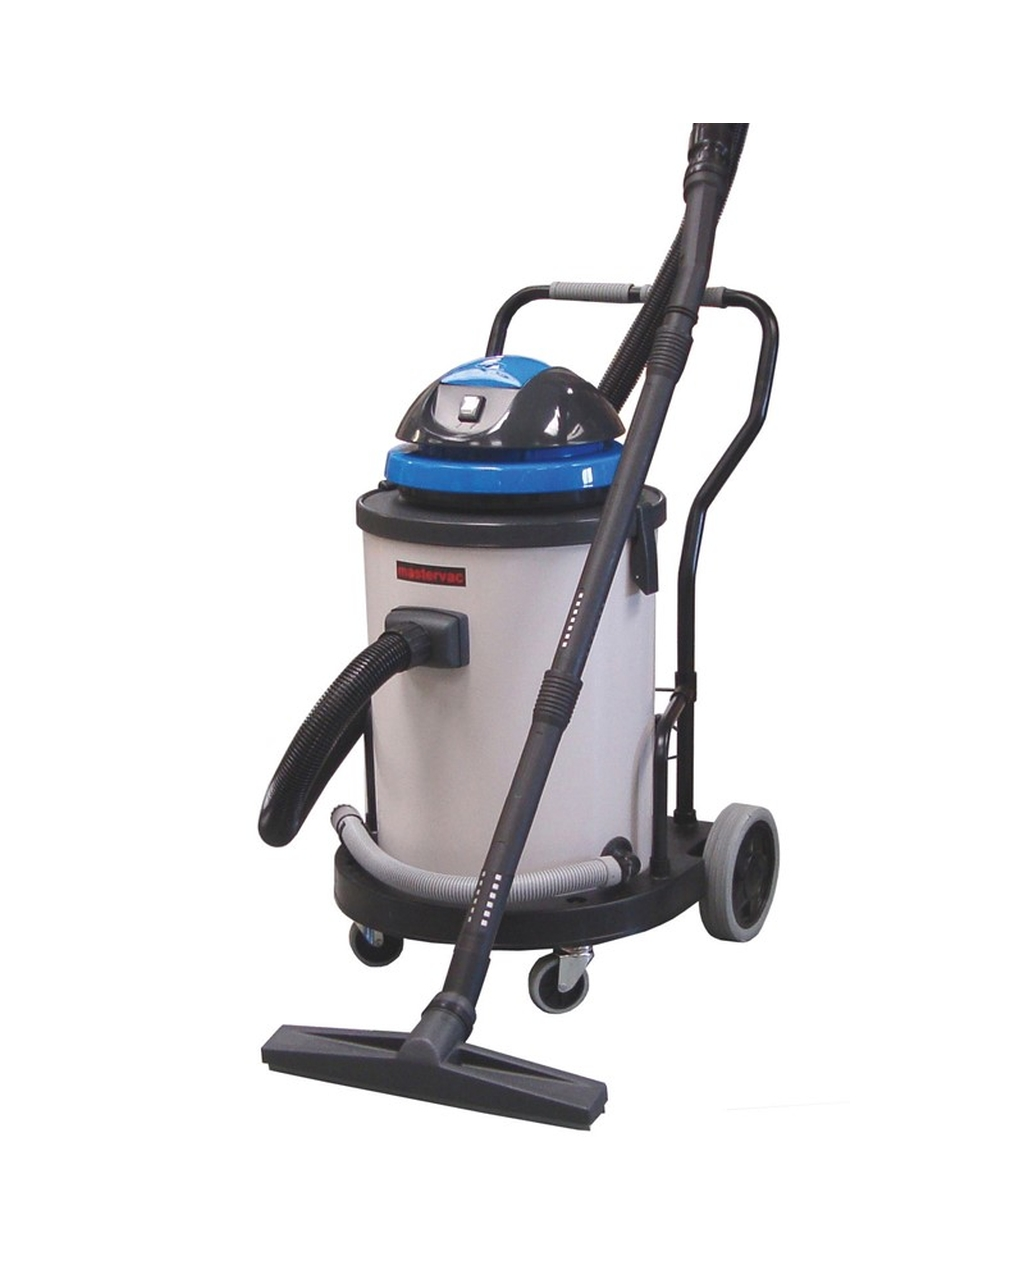 45 Litre Wet and Dry Vac